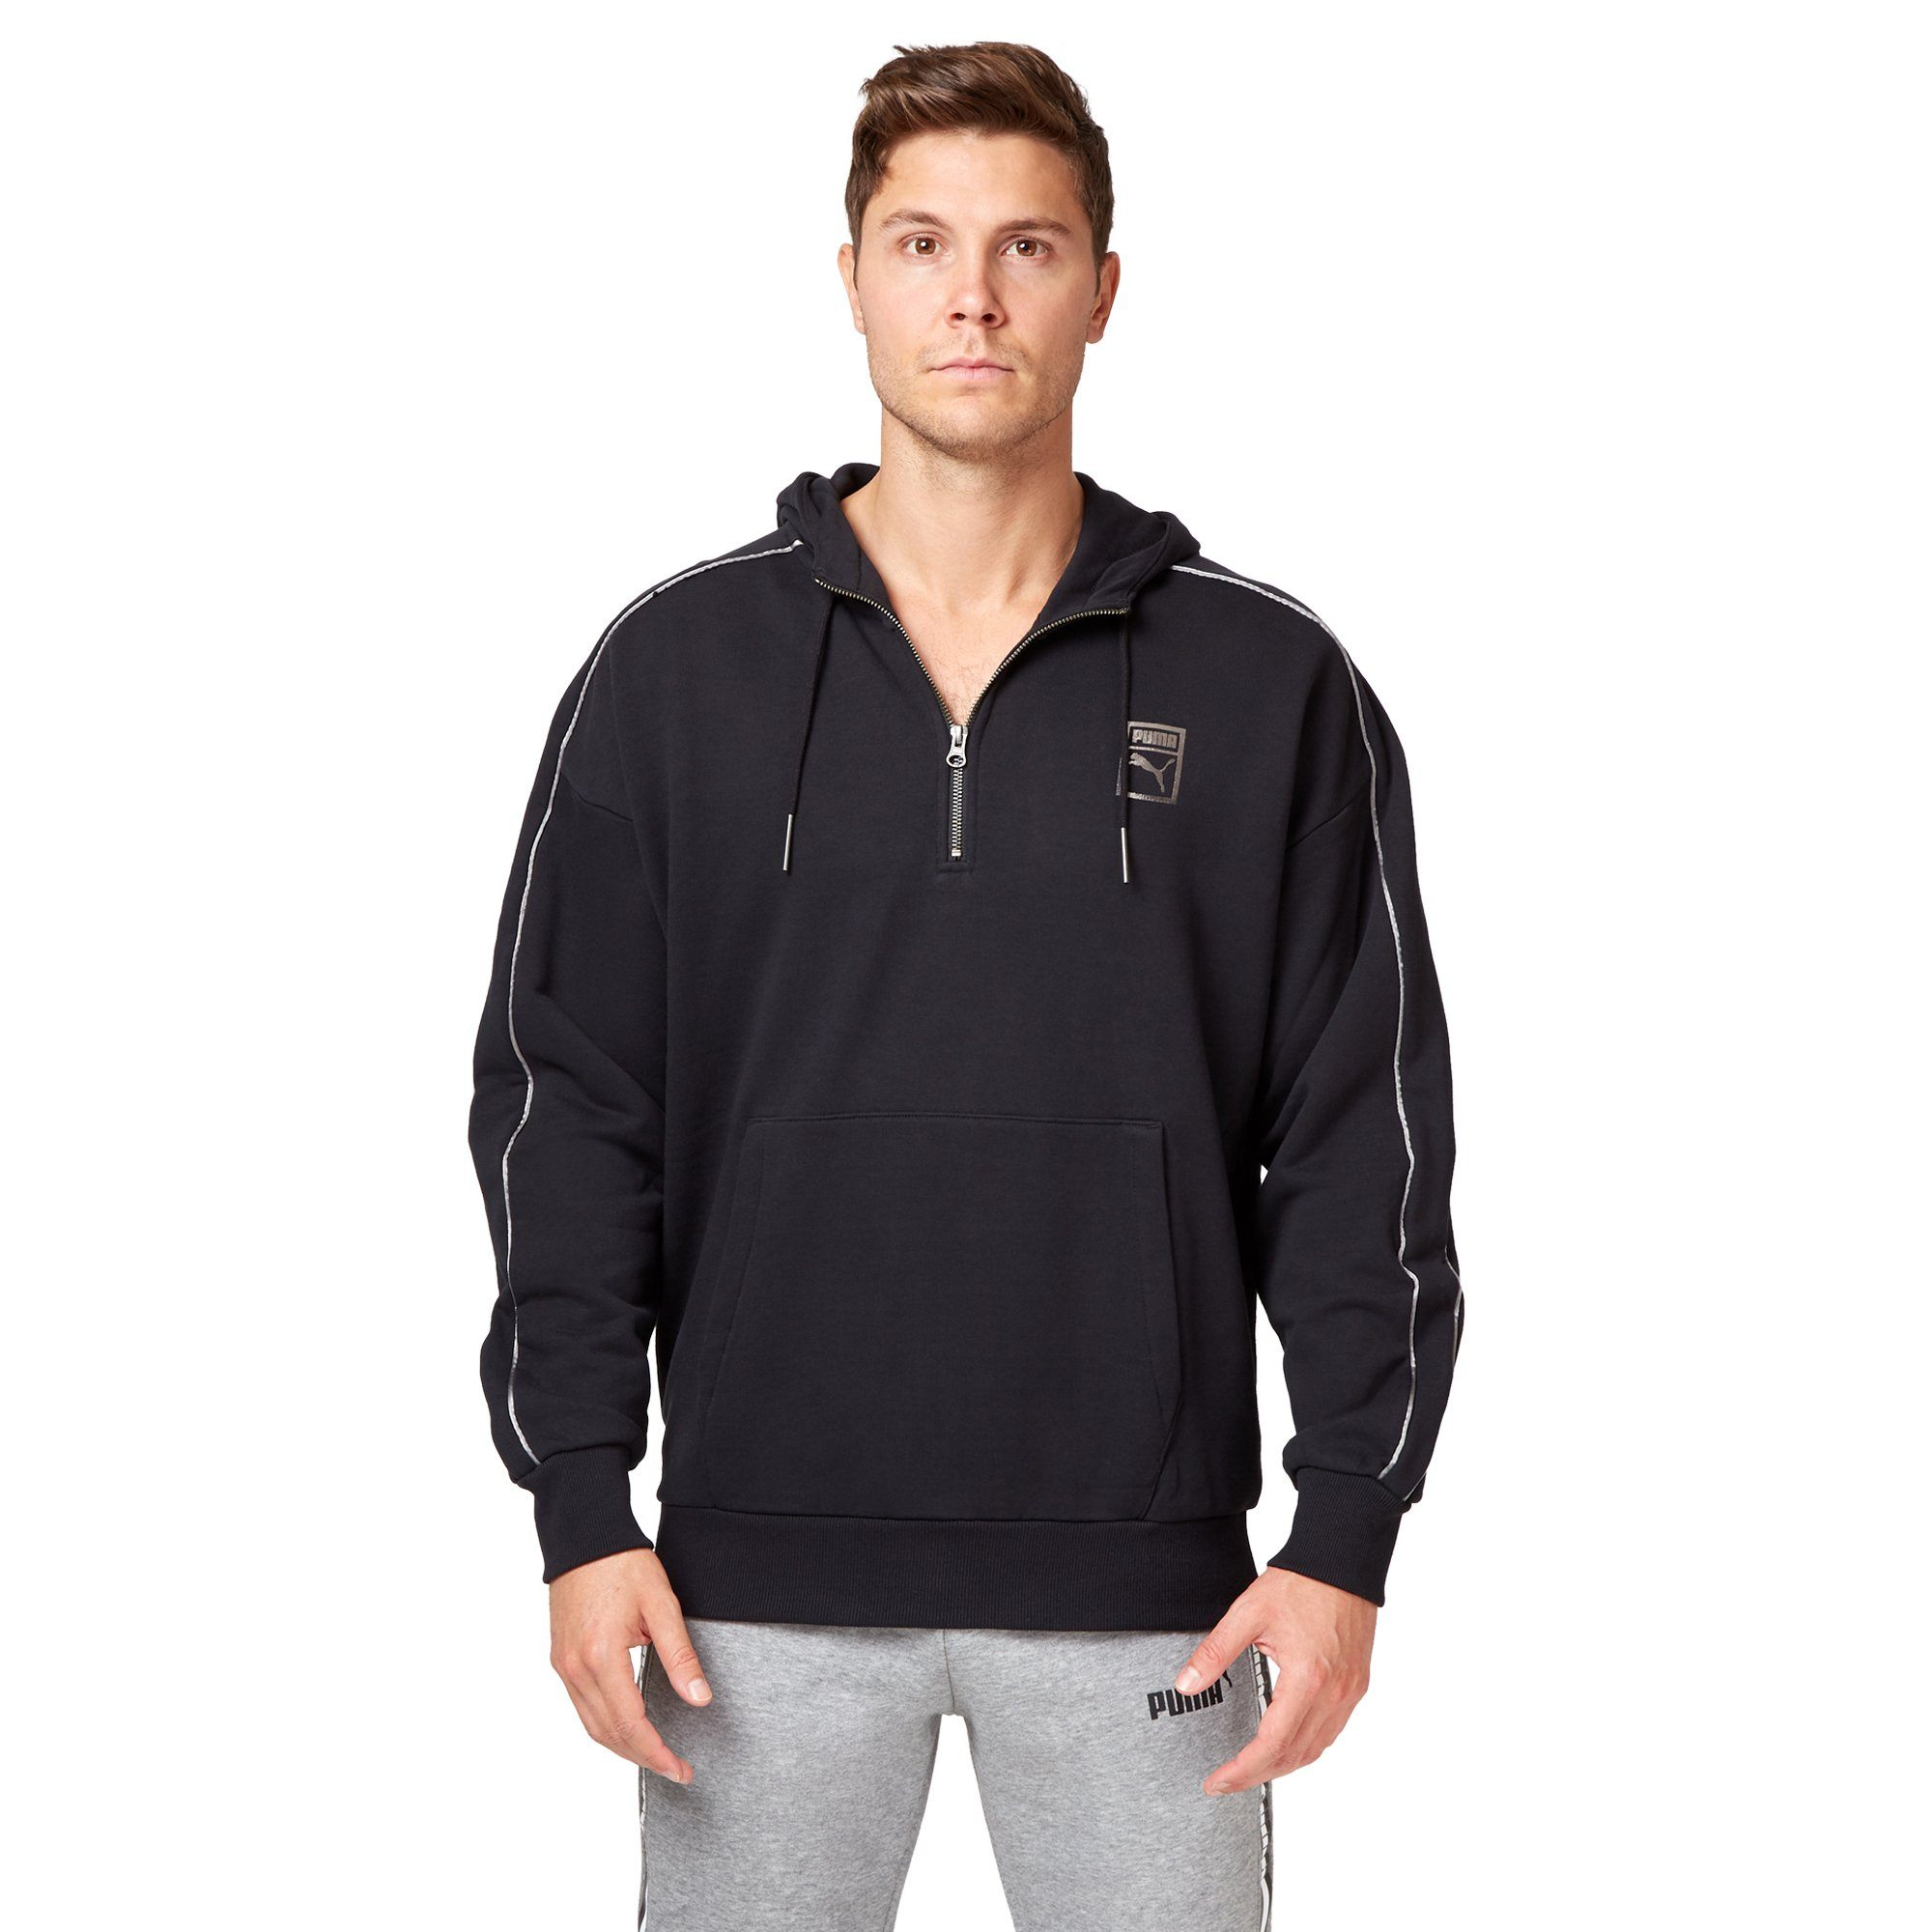 Puma Men's Chains T7 Half Zip Hoodie - Black Apparel Puma  (2122605822011)